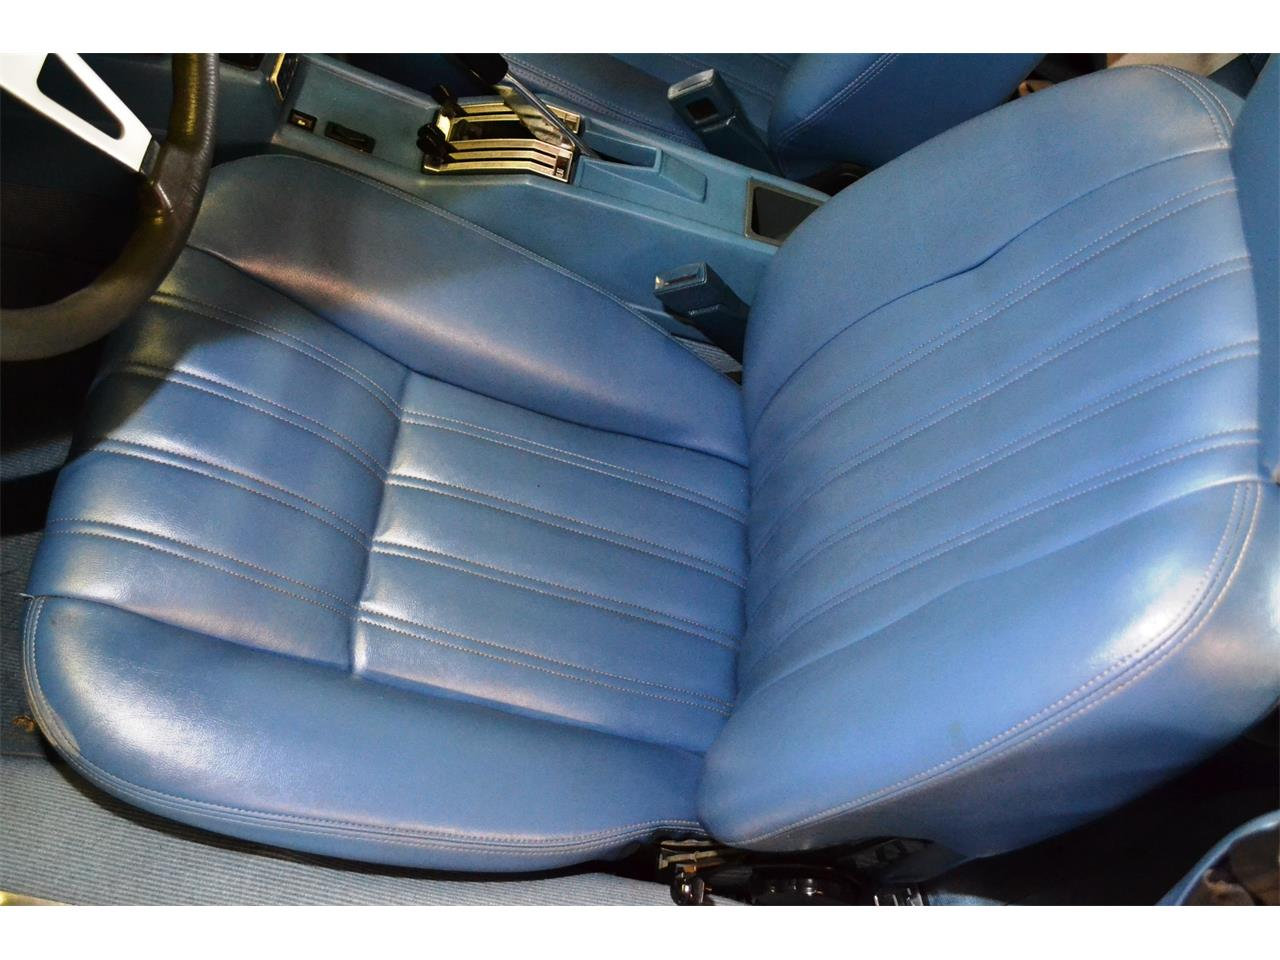 1981 Fiat Spider for sale in Barrington, IL – photo 33